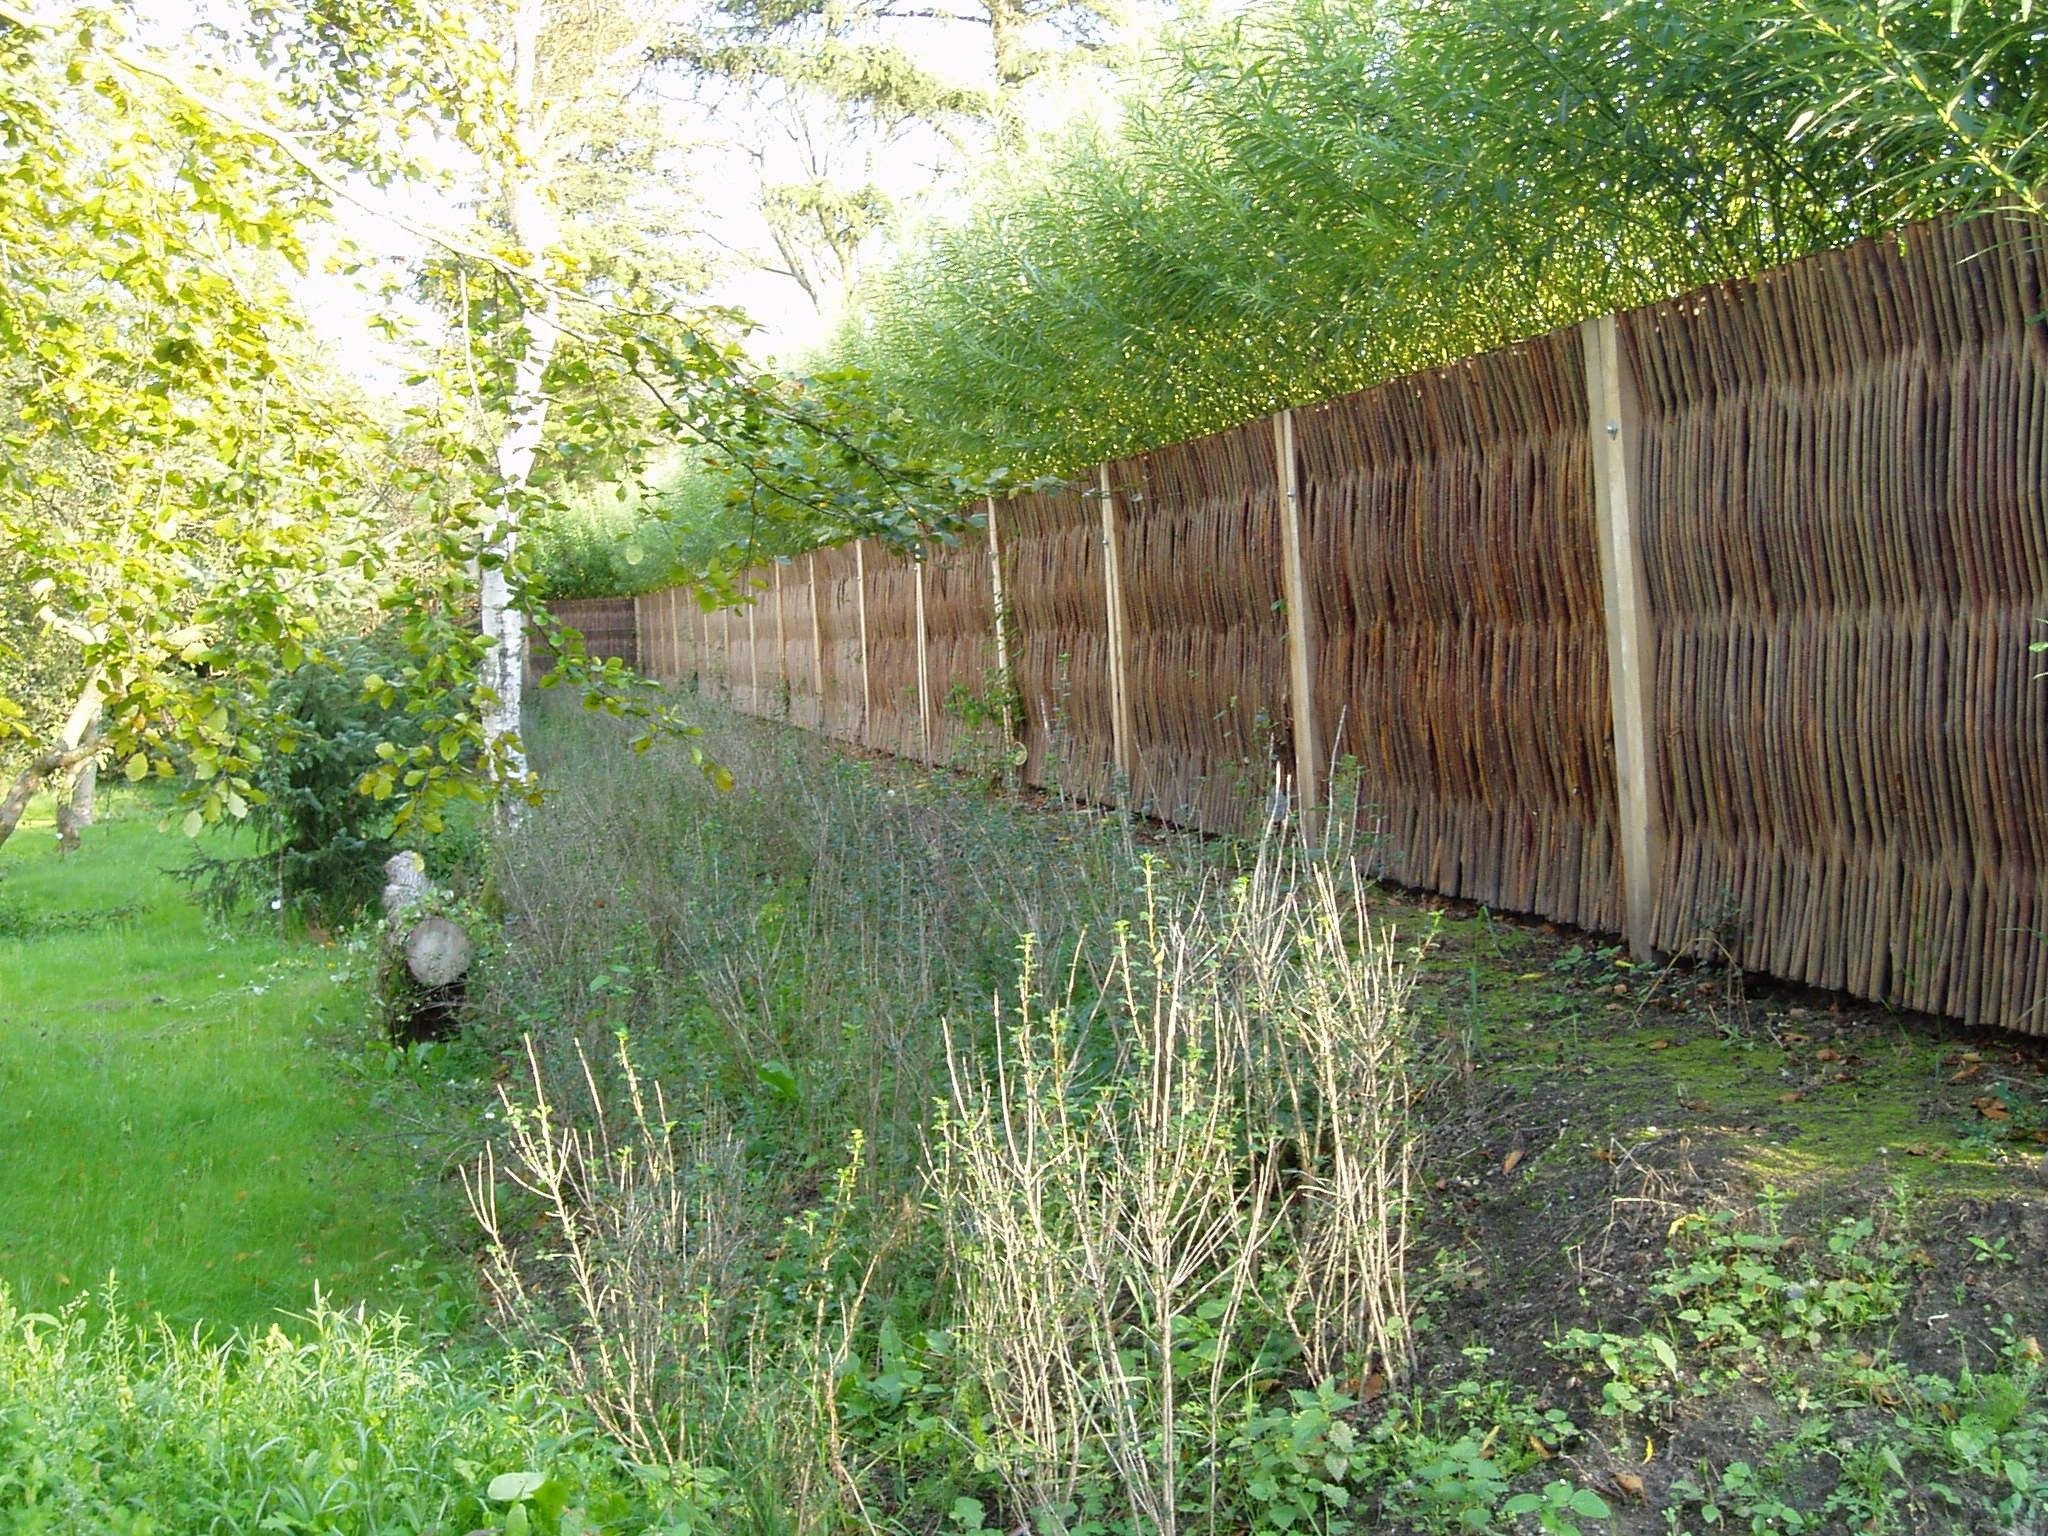 Woven Willow Noise Barrier And Living Willow Pannels On The Other Side.  #TheGreenBarrier #